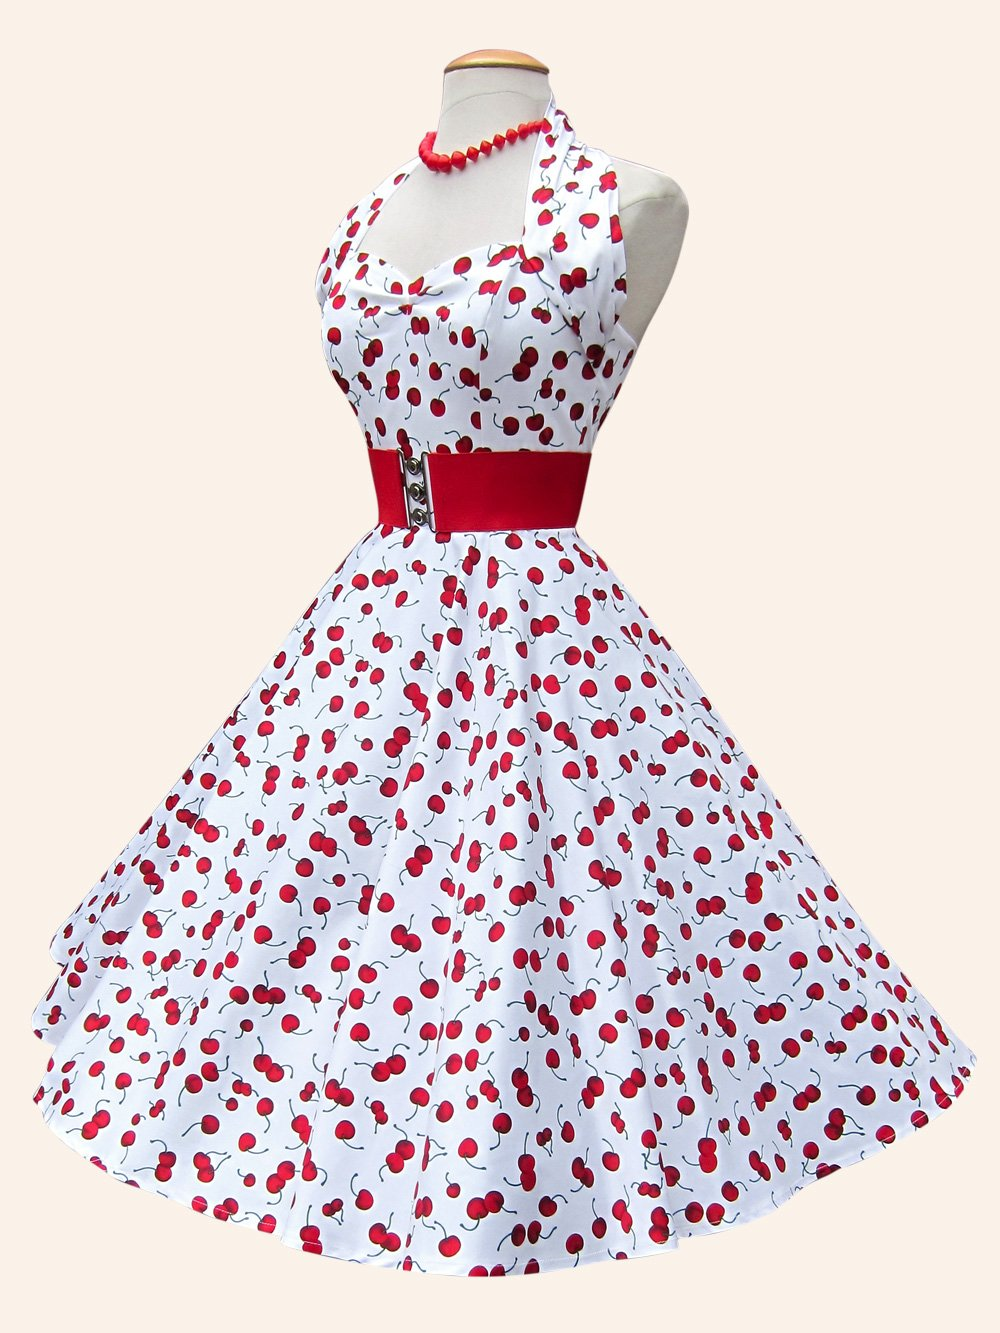 View all dresses view all 1950s halterneck circle dress view